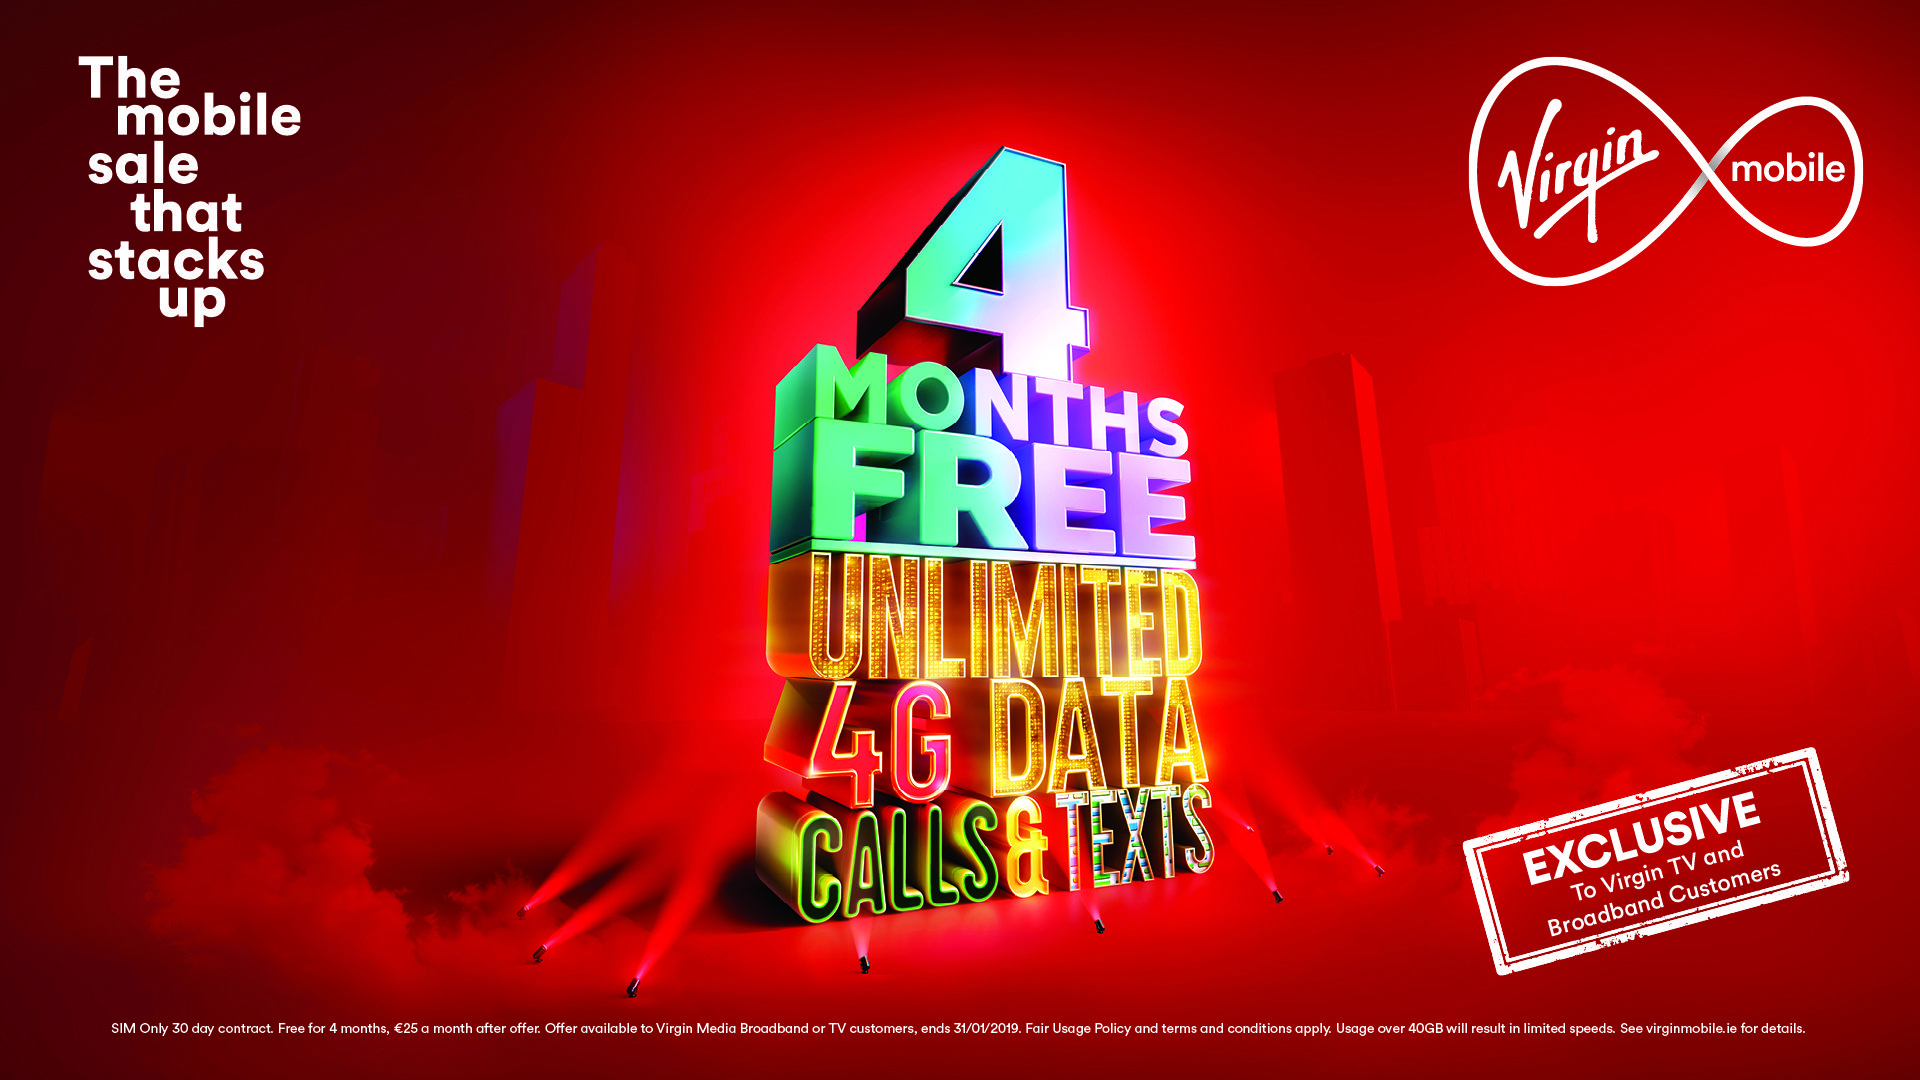 Ahead of the festive season, Virgin Mobile is launching new mobile offers  including an unlimited mobile offer for 4 months absolutely FREE.